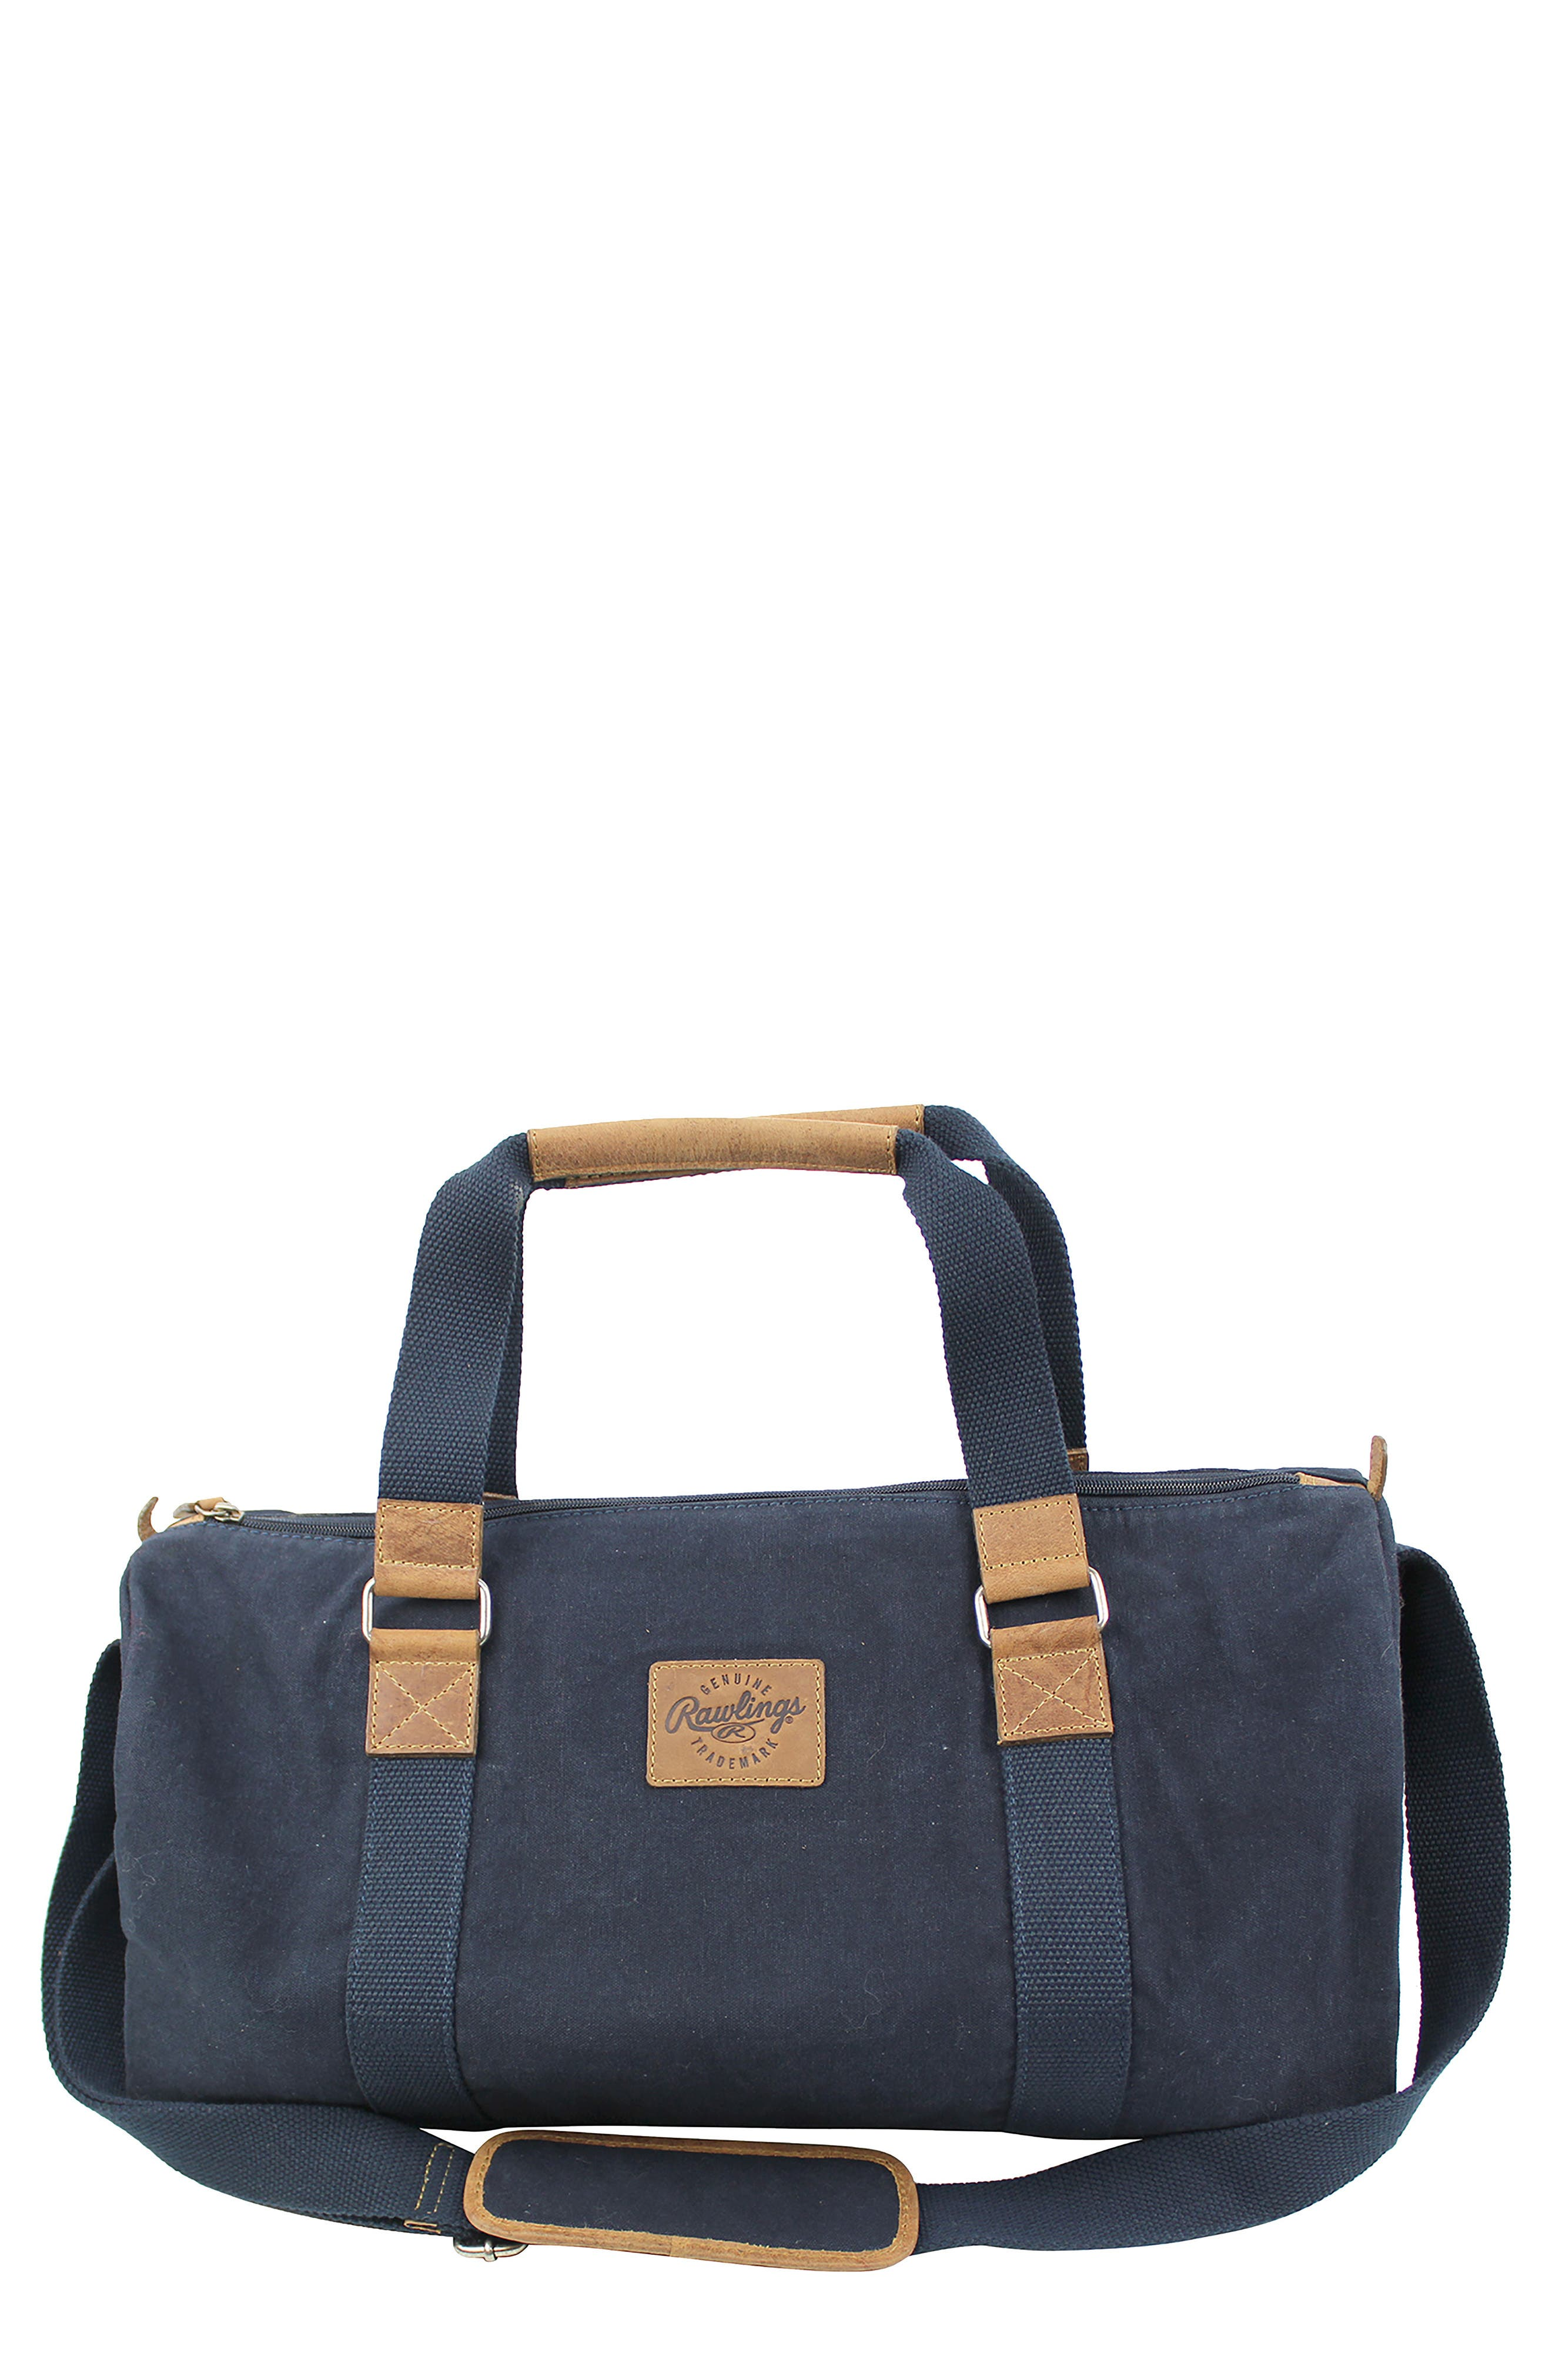 Canvas Duffel Bag,                             Main thumbnail 1, color,                             Navy